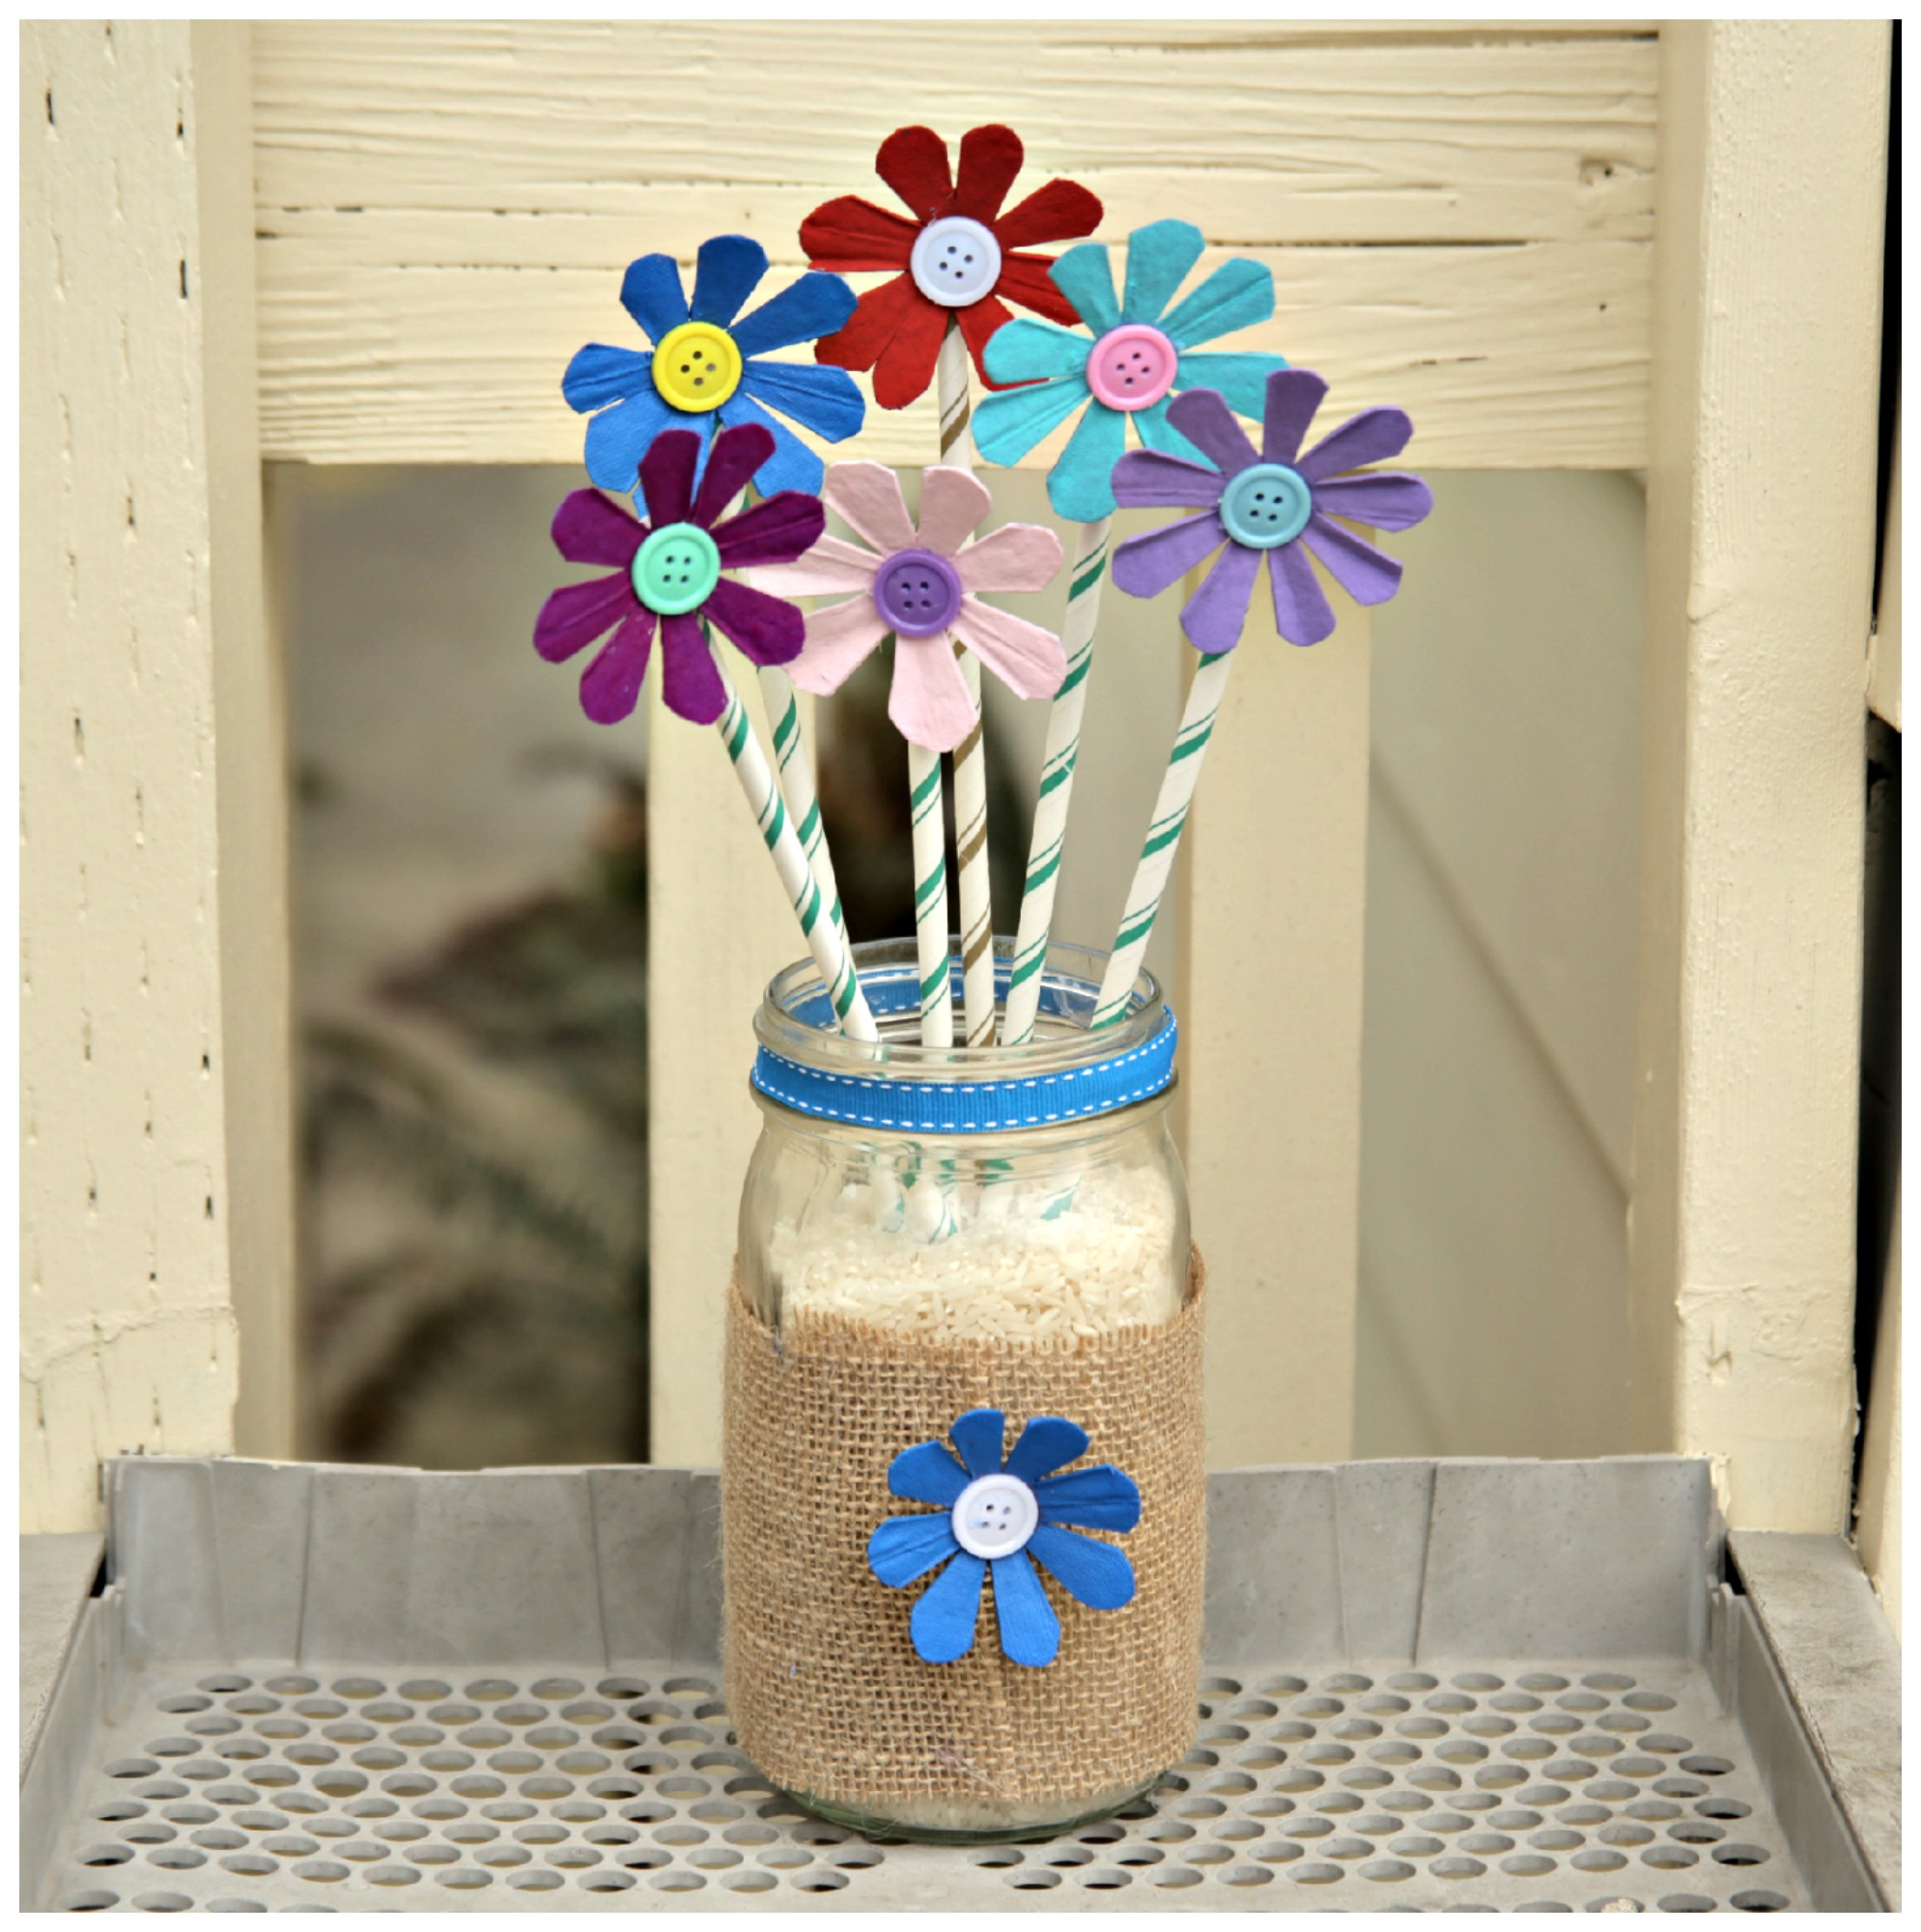 6 earth day crafts from recycled materials kix cereal for Craft by waste things